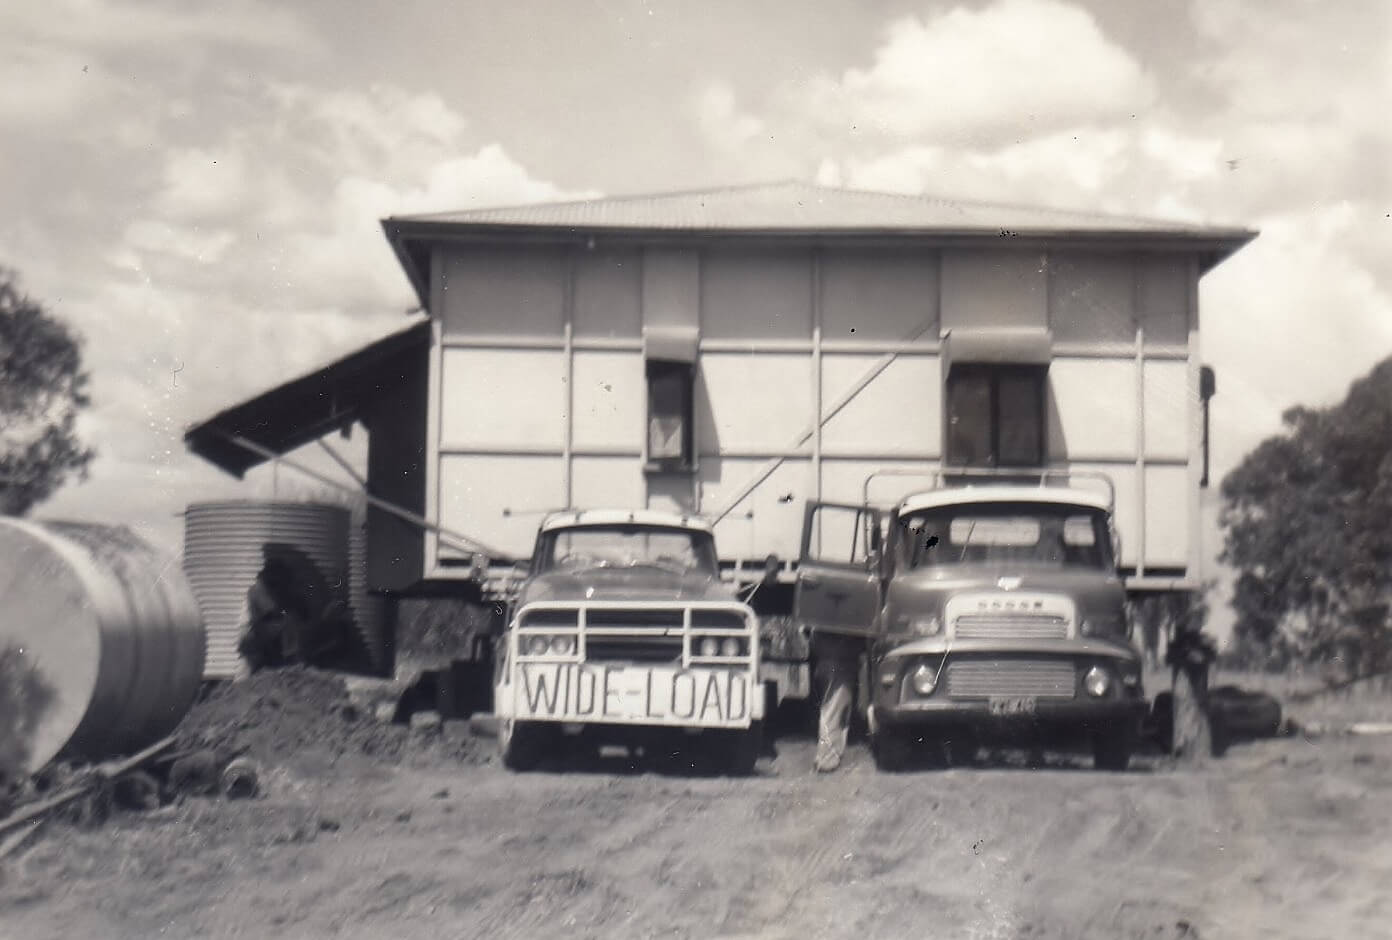 1960s: Moving a house to the new property